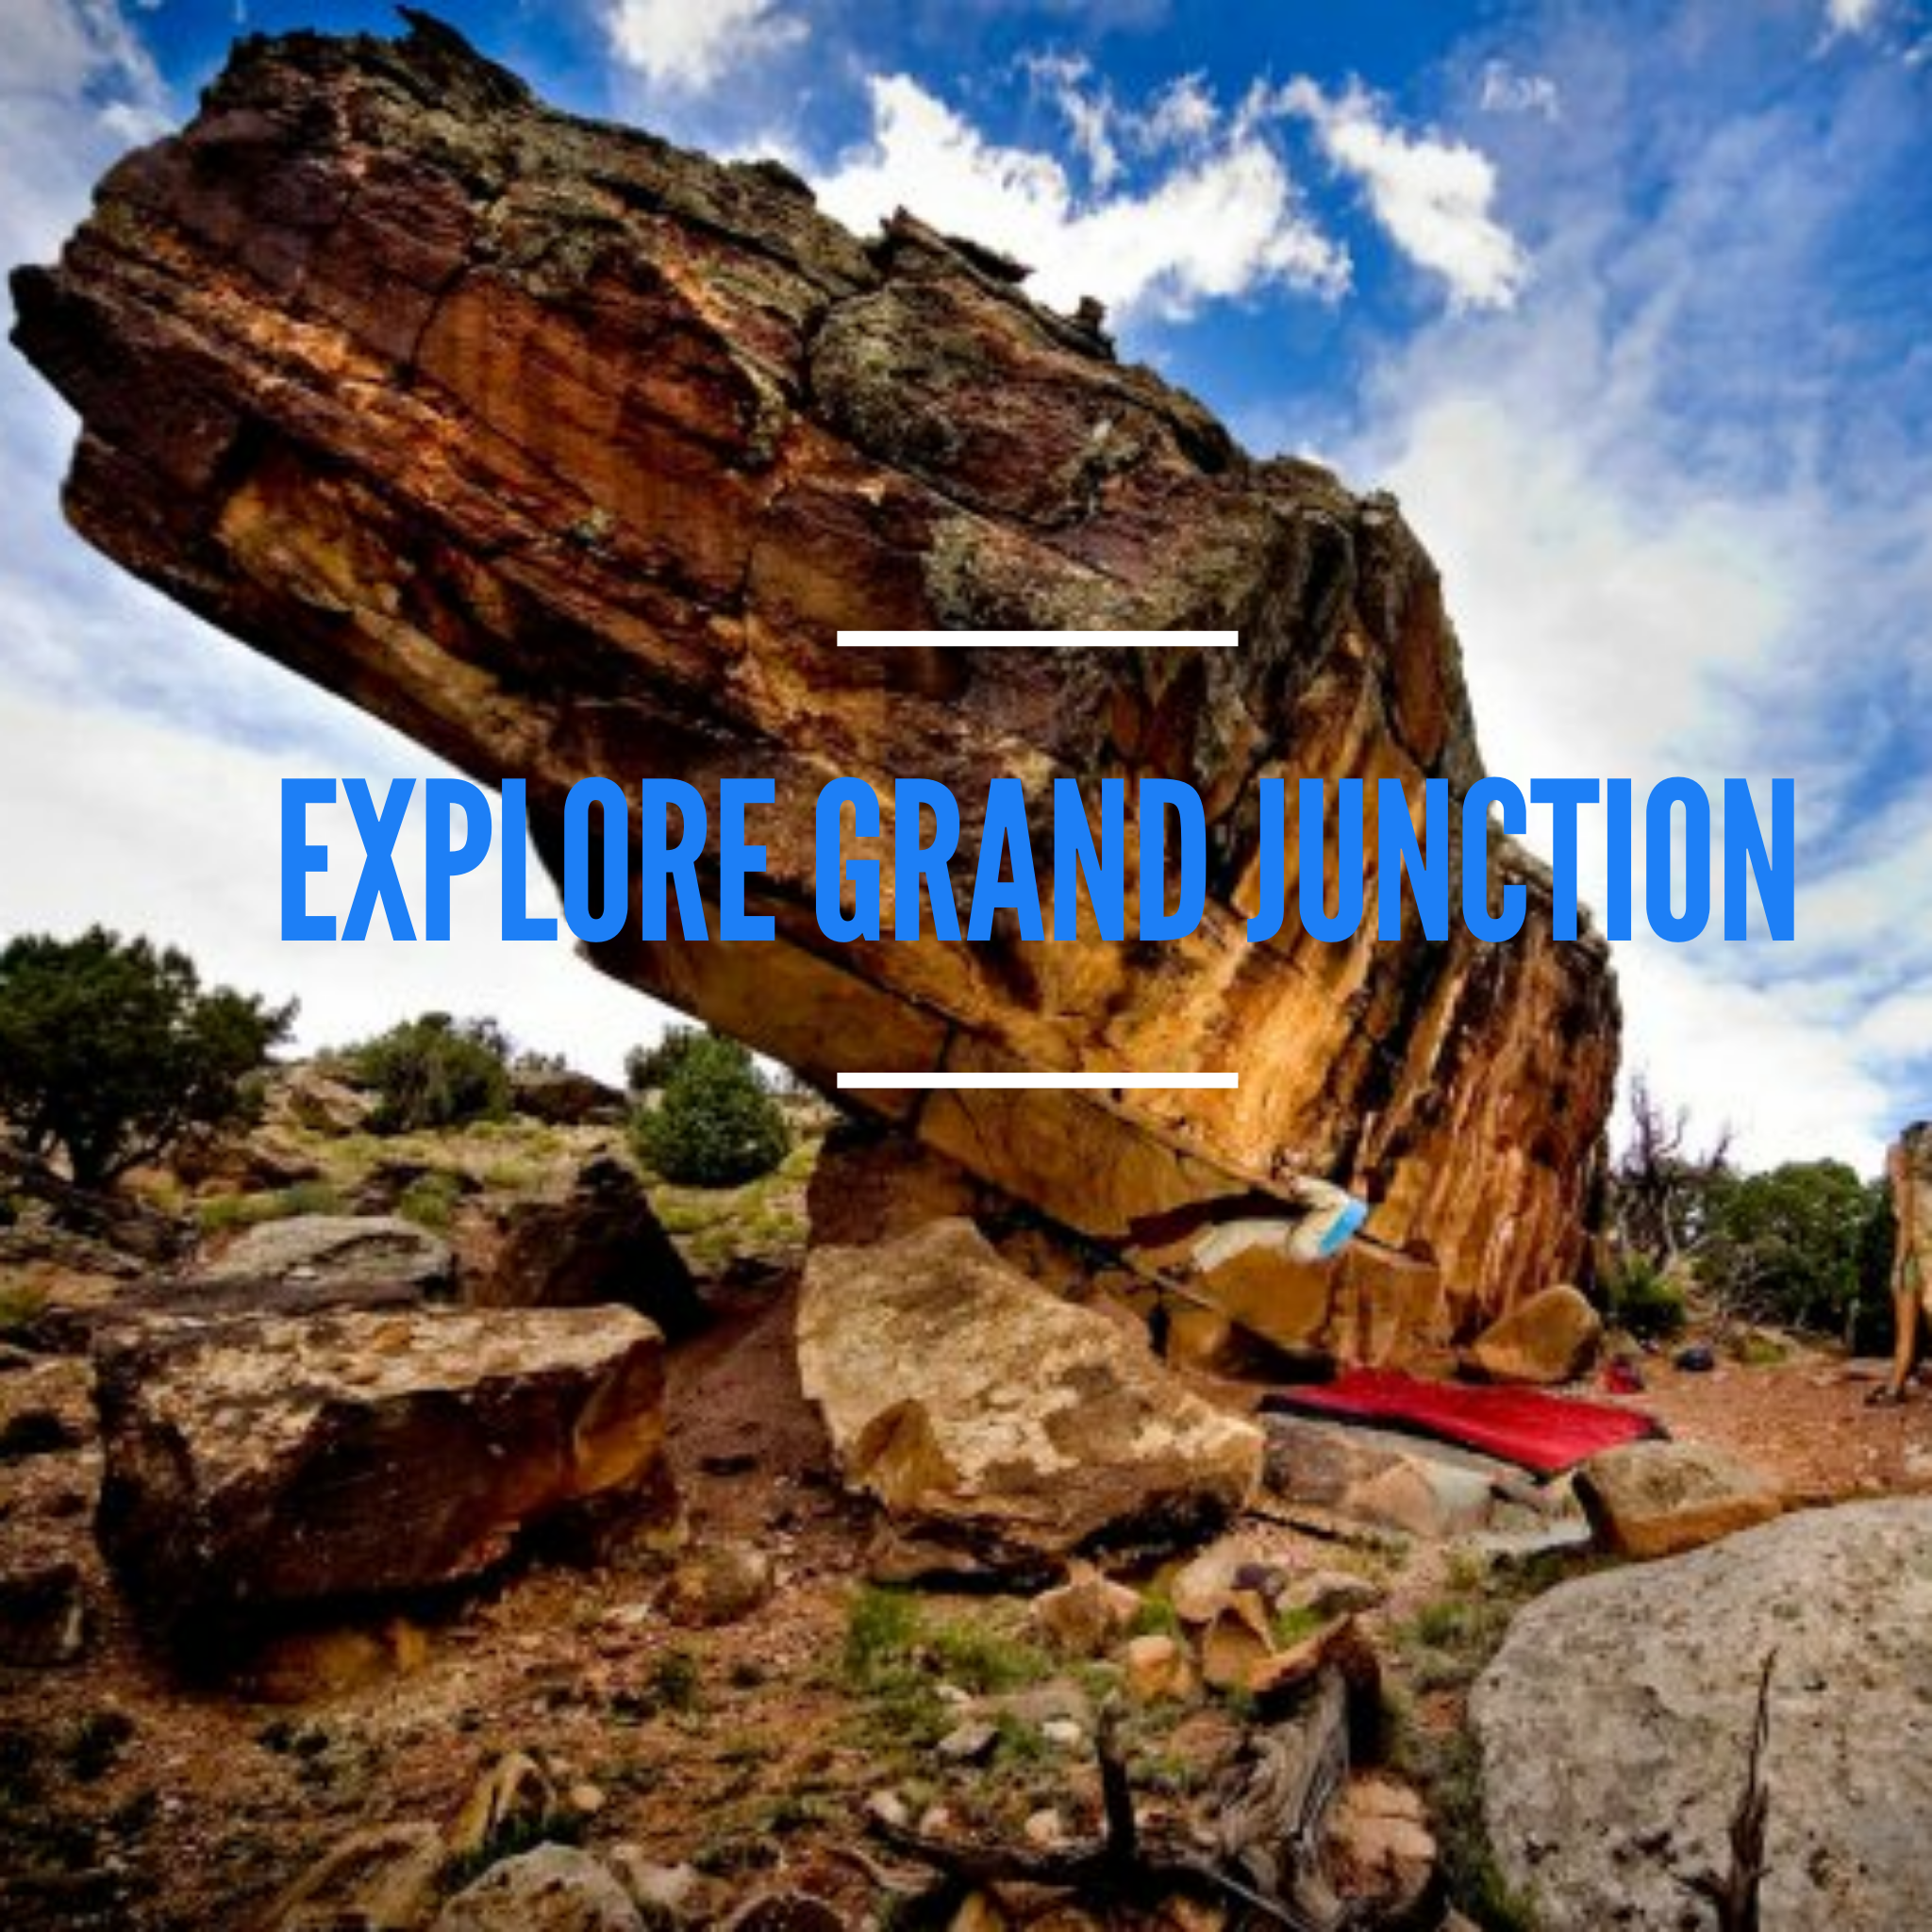 Find things to do, hotels and lodging, restaurants and more in Grand Junction, Colorado, with the help of official Visit Grand J